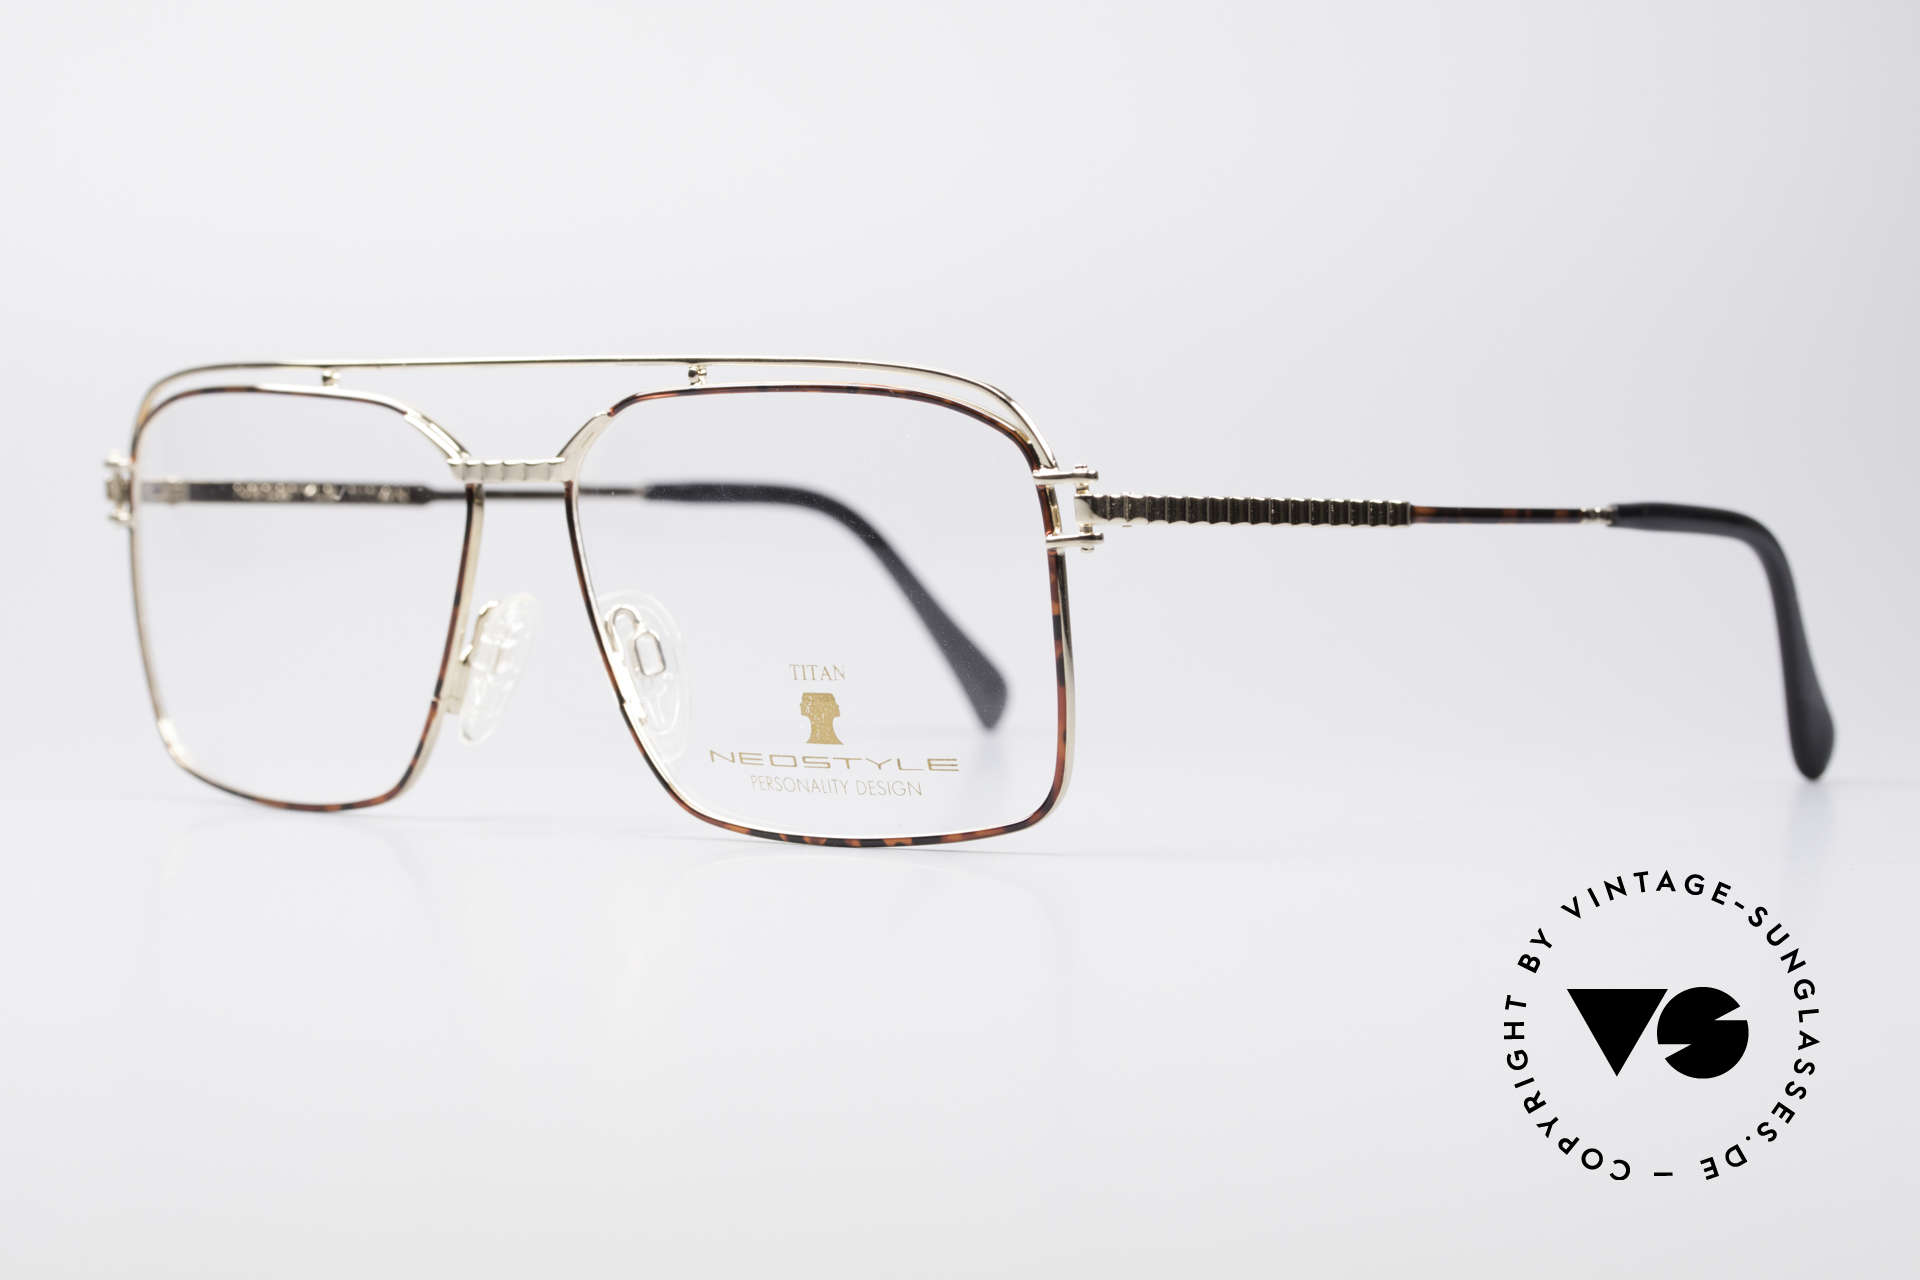 Neostyle Dynasty 424 - XL 80's Titanium Men's Frame, comes with original case and cloth by Neostyle, Made for Men